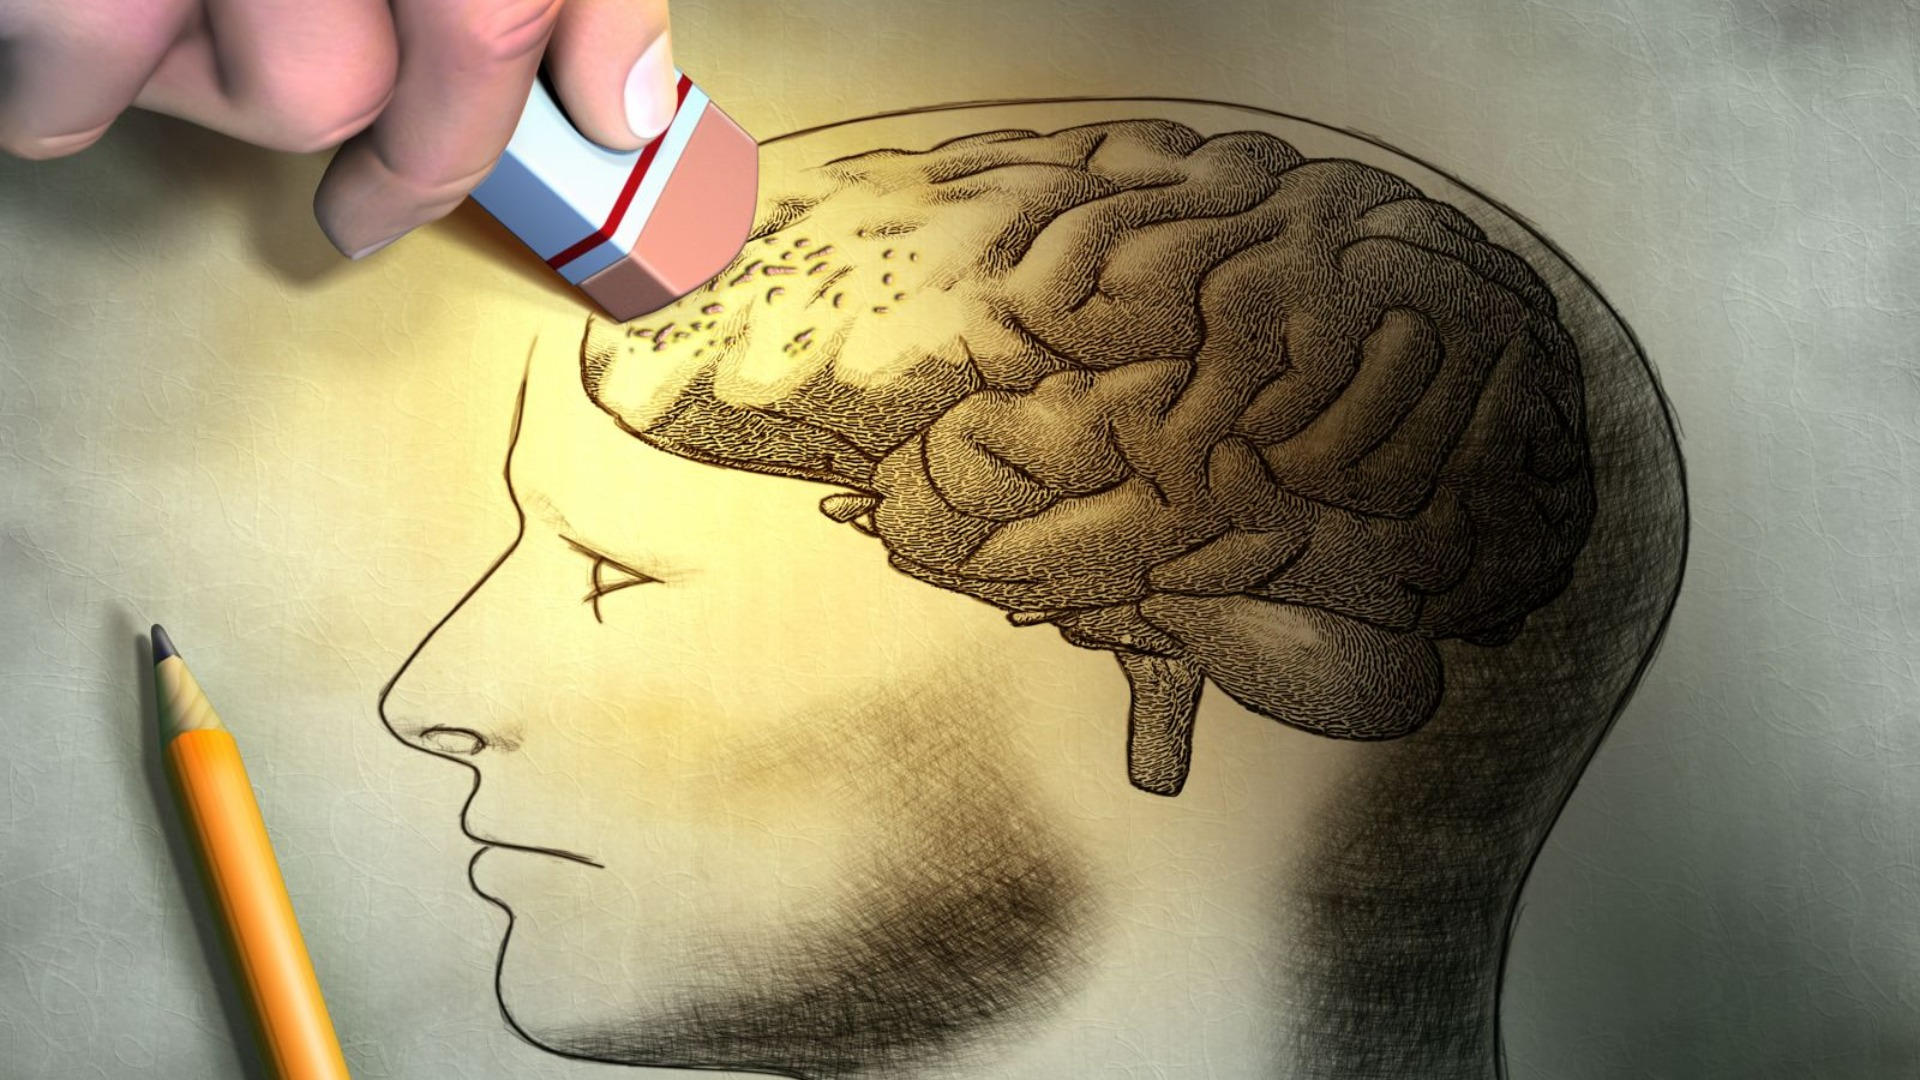 Dementia isn't actually a disease, according to the Mayo Clinic. It's a catch-all term for changes in the brain that cause a loss of functioning that interferes with daily life. Dementia can diminish focus, the ability to pay attention, language skills, problem-solving and visual perception. It also can make it difficult for a person to control his or her emotions and lead to personality changes.A loved one showing symptoms of dementia needs to see a medical expert who can conduct tests and come up with a diagnosis. If a loved one has dementia, you'll want to plan how you will manage that care, especially as the condition progresses.Here are some of the warning signs identified by dementia experts and mental health organizations: